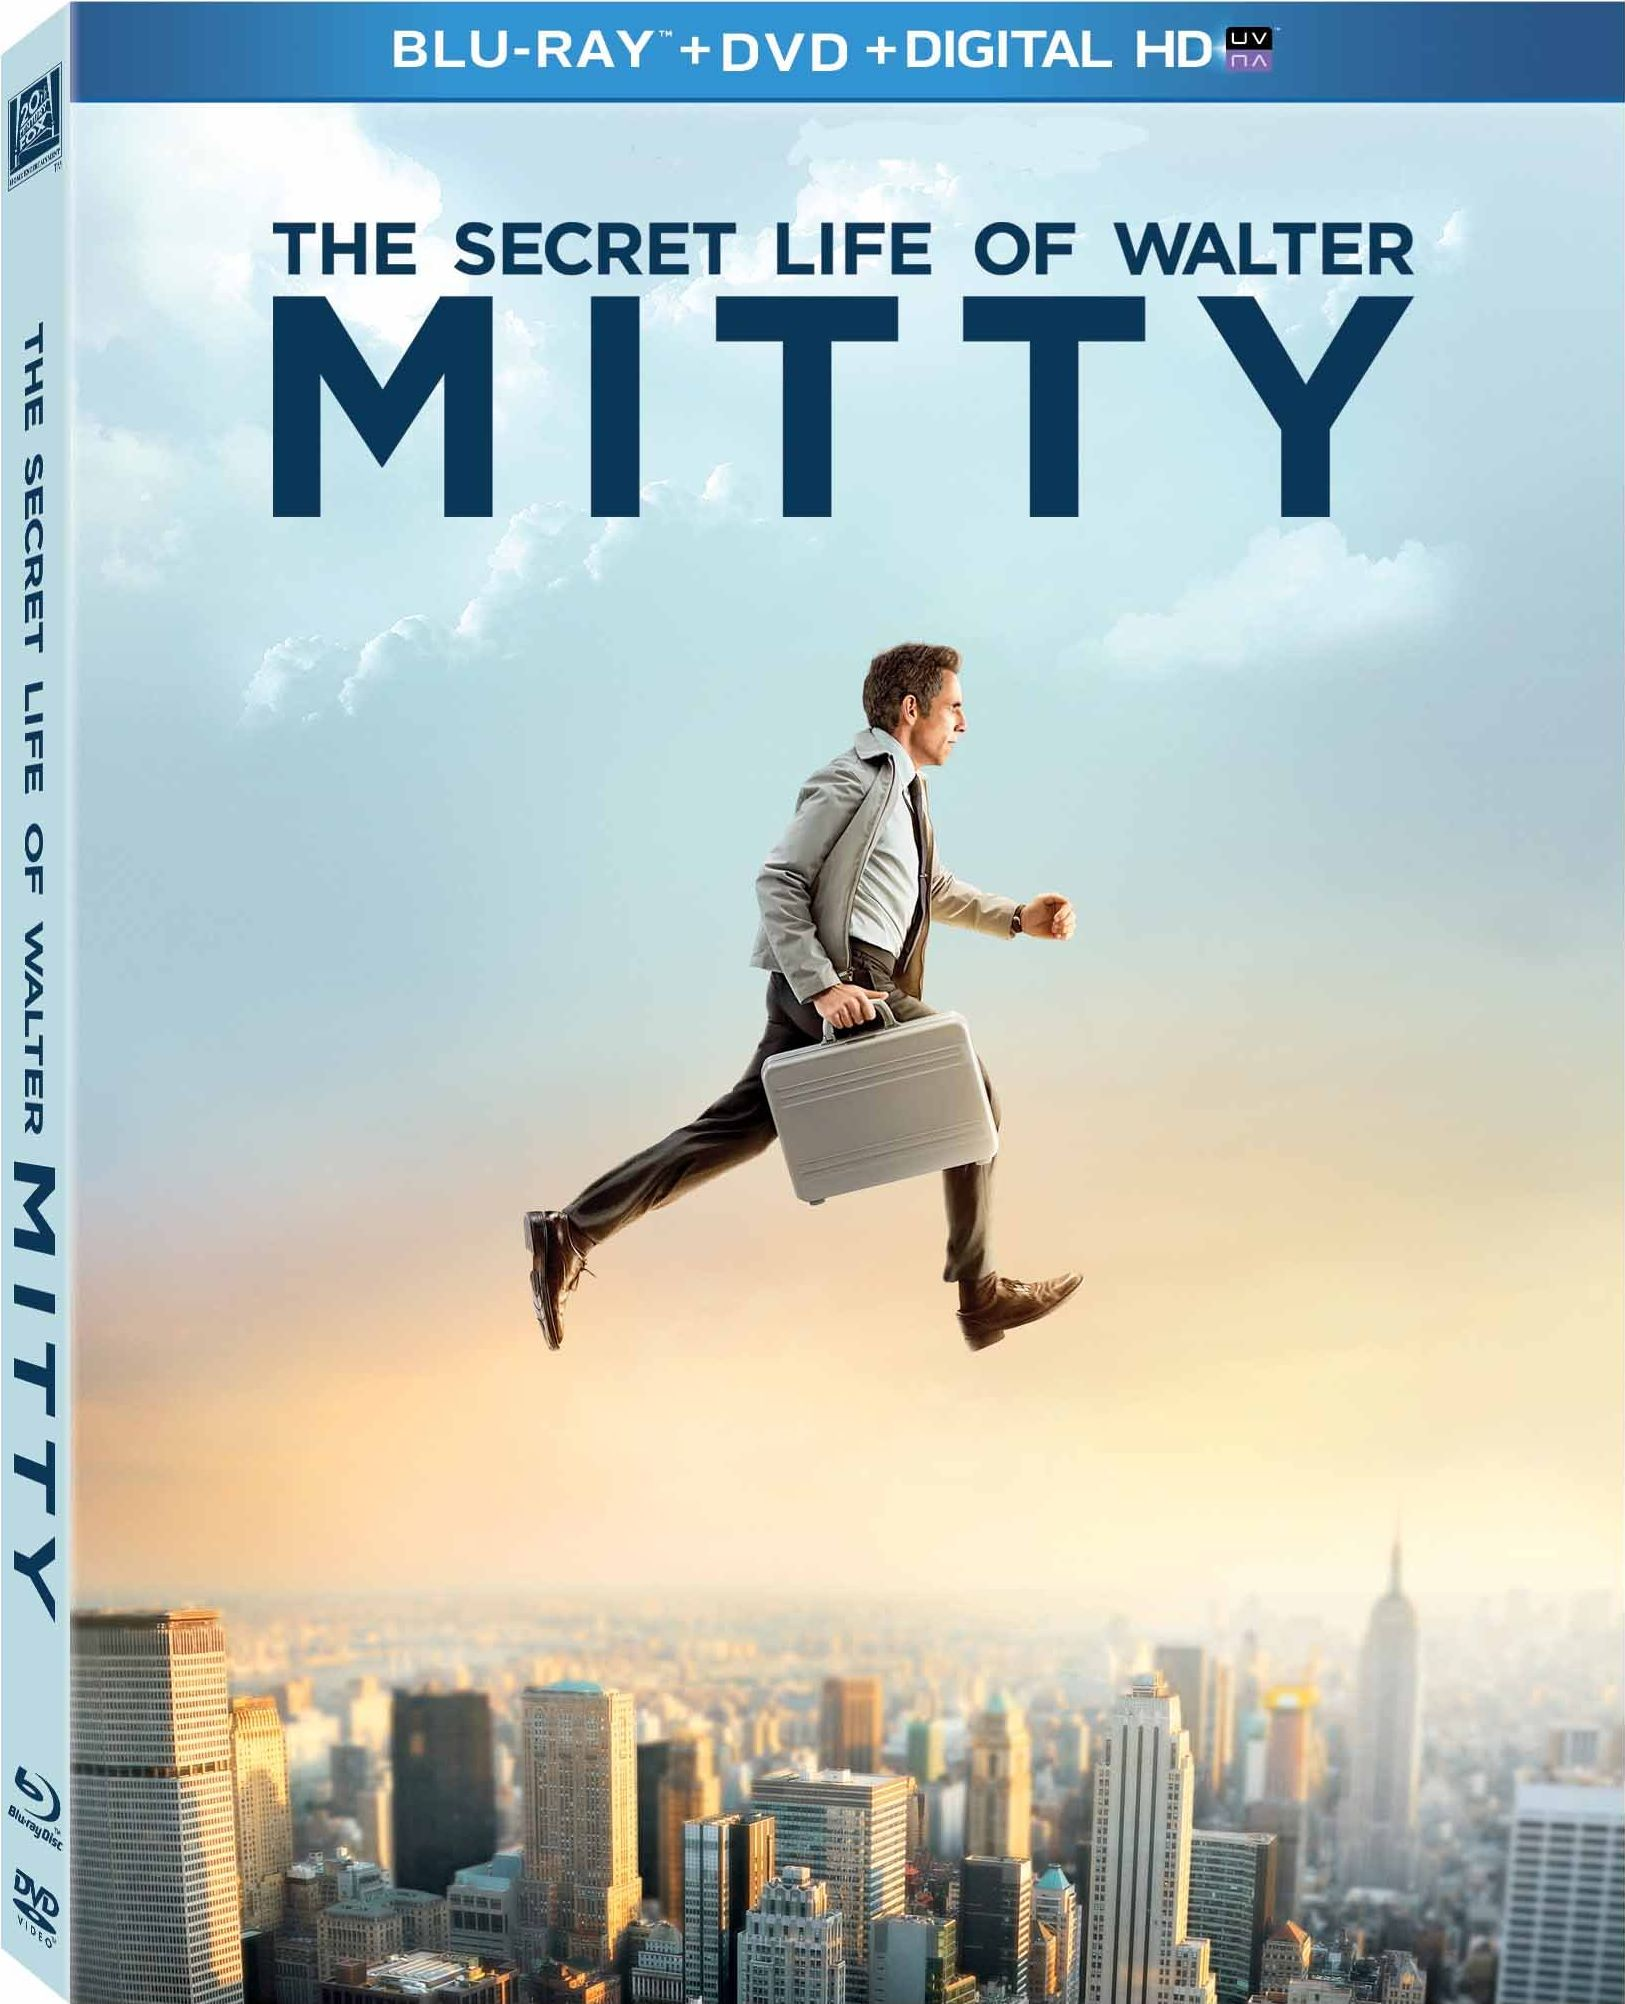 Mitty Short Cover Story Walter Life Secret 4